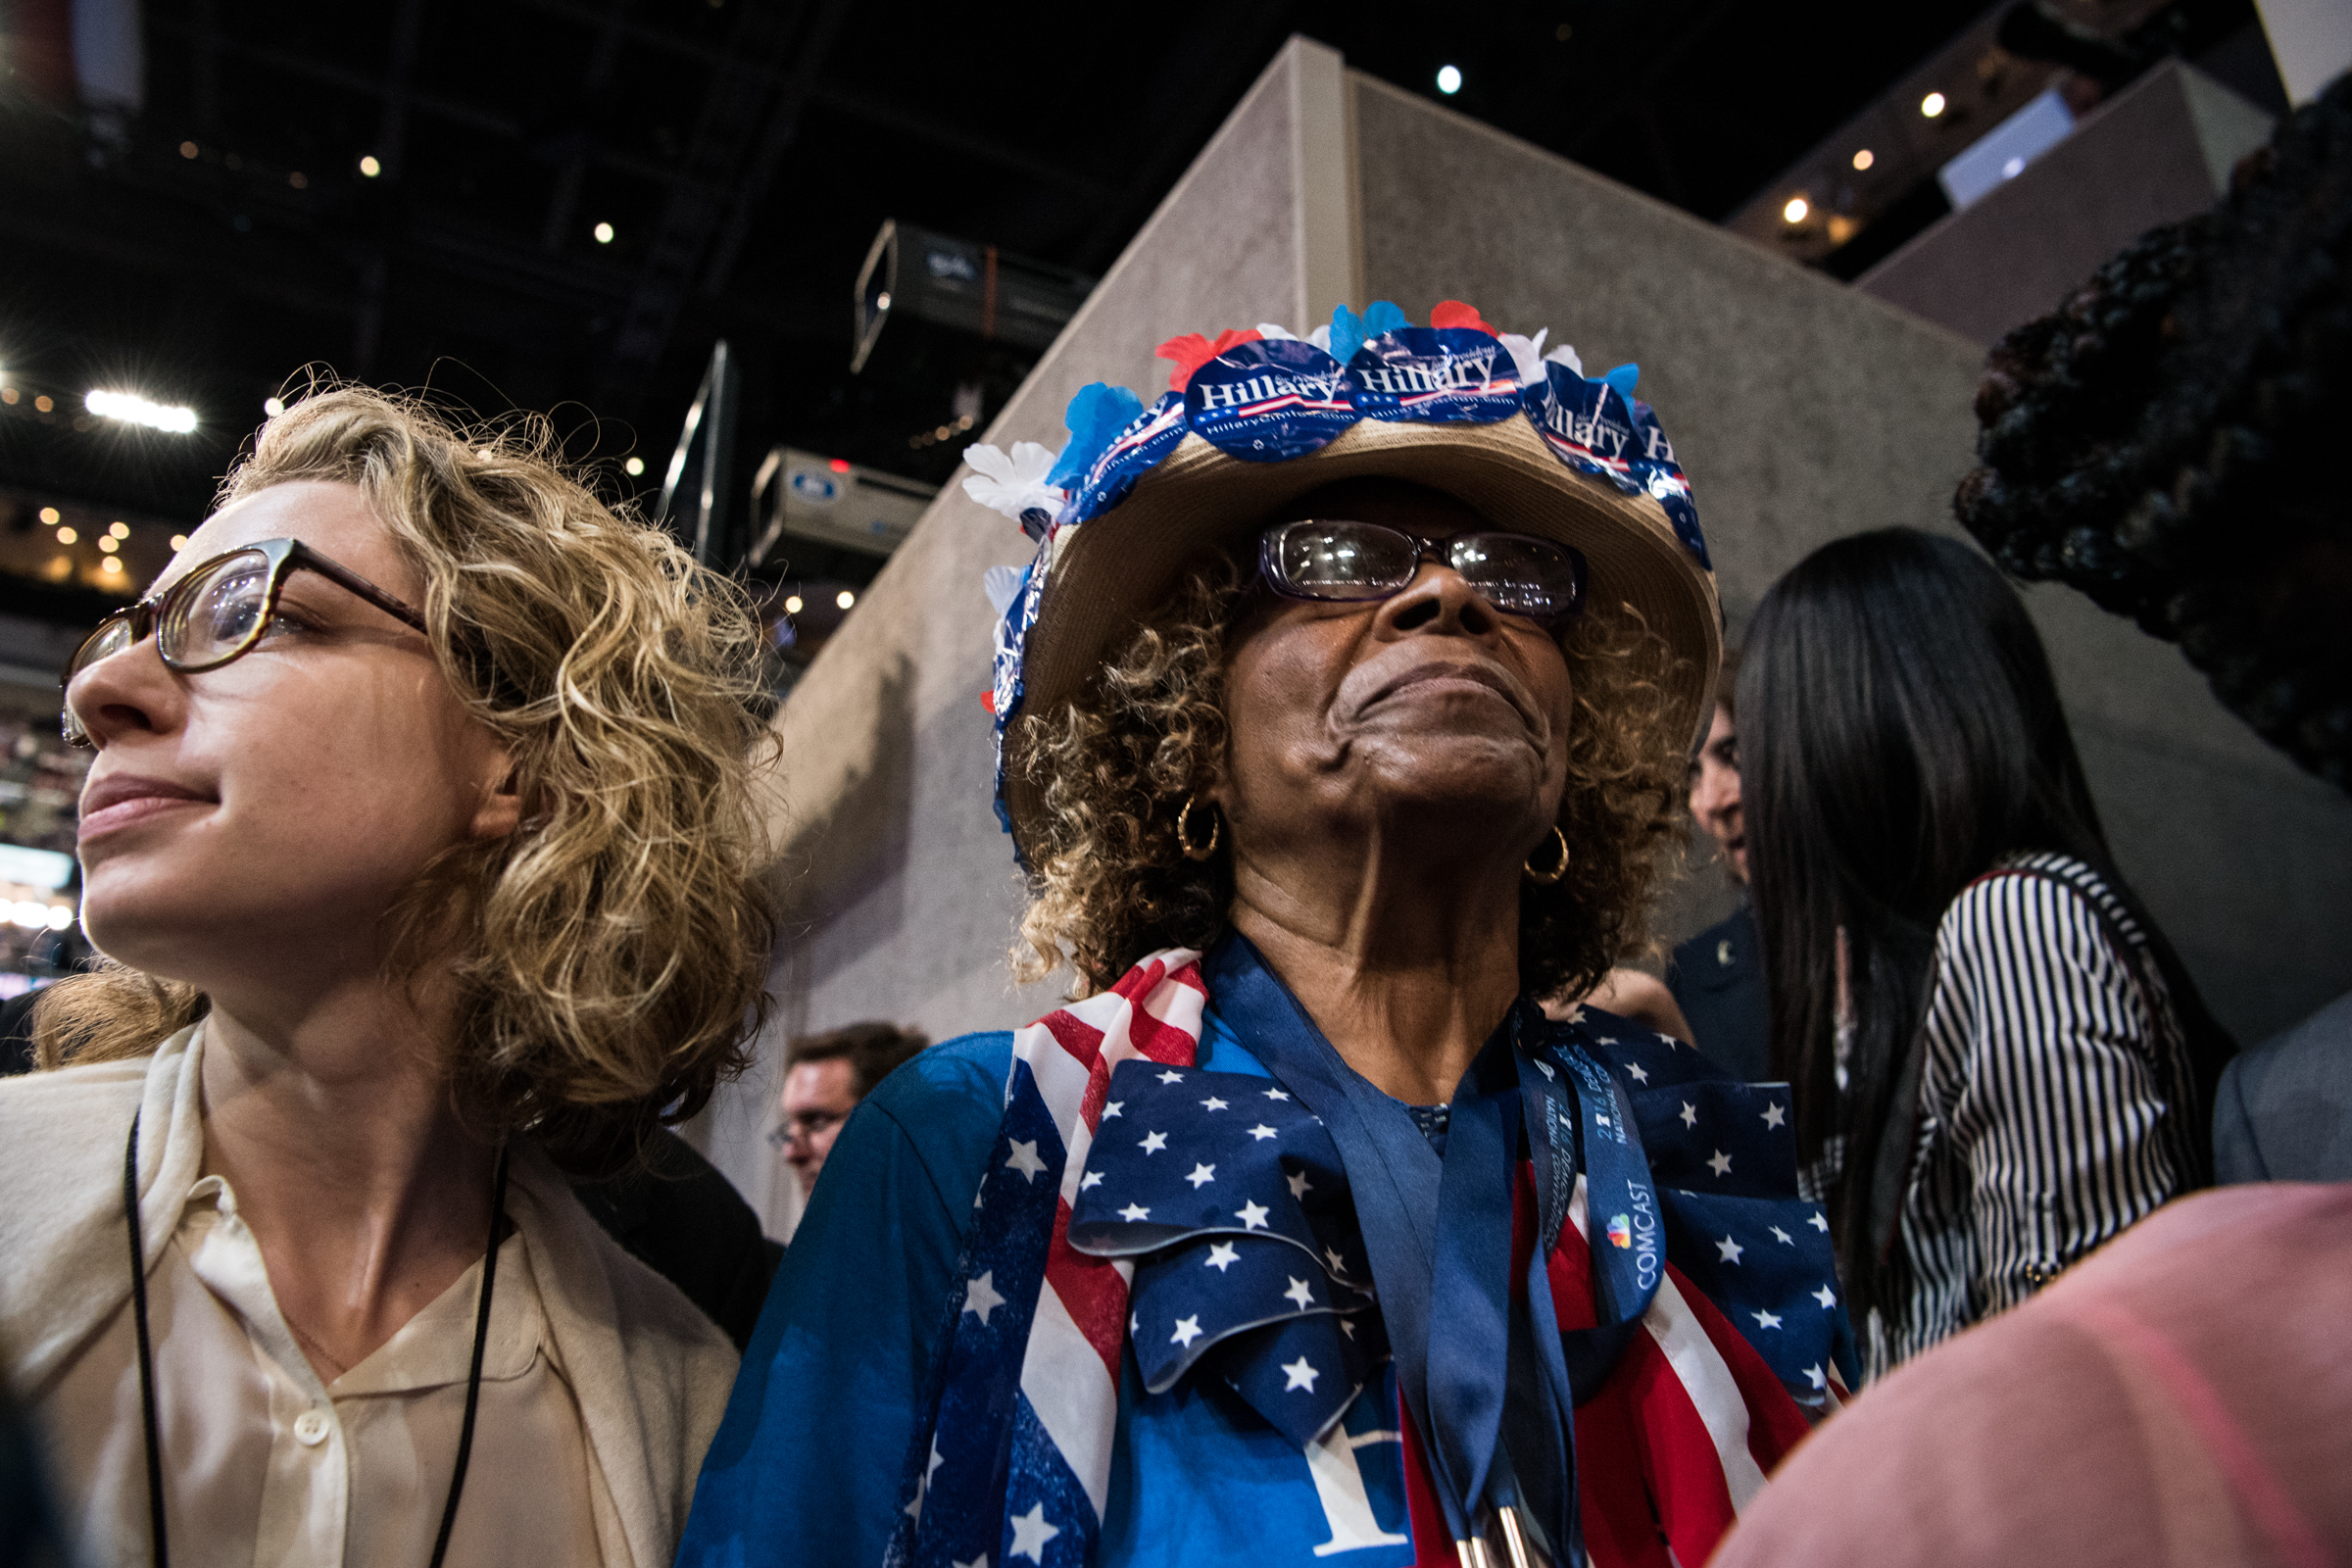 Gladys Evans (center) of Florida dons a Hillary Clinton themed hat during the Democratic National Convention at the Wells Fargo Center in Philadelphia on Monday, July 25, 2016. (Michael Ares / Philadelphia Inquirer)